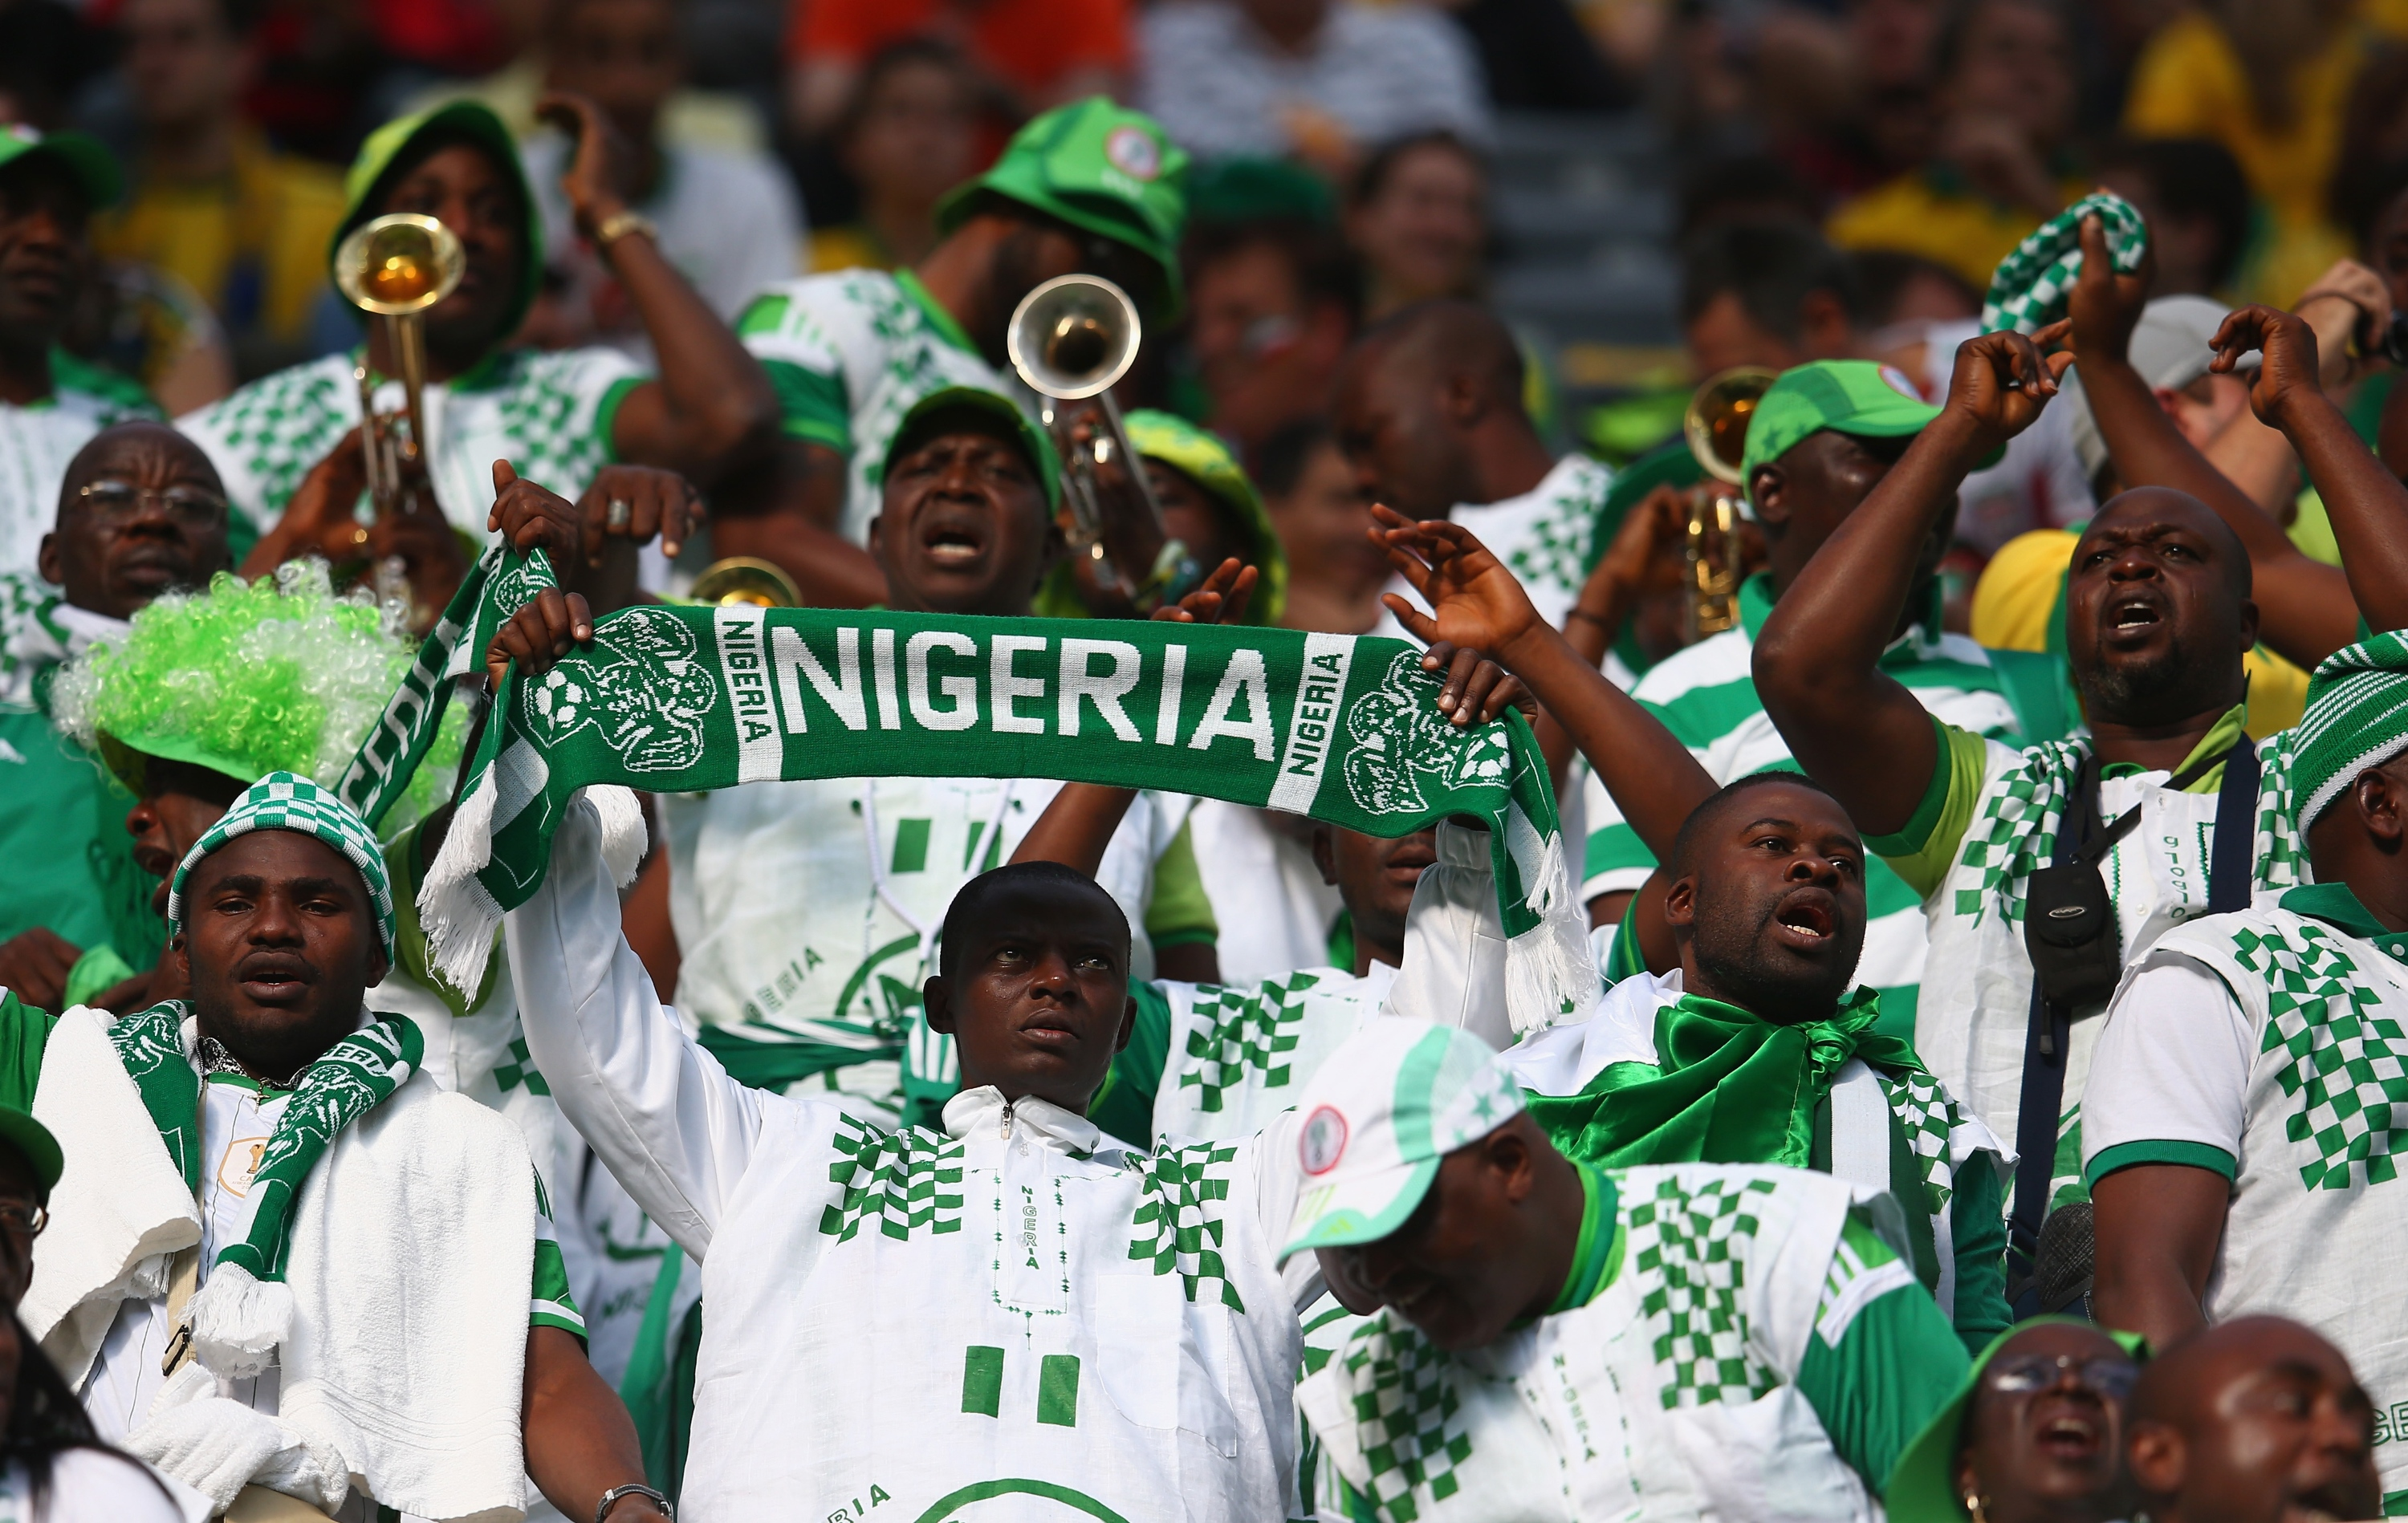 Why Nigerians do not care about the World Bank's forecast ...